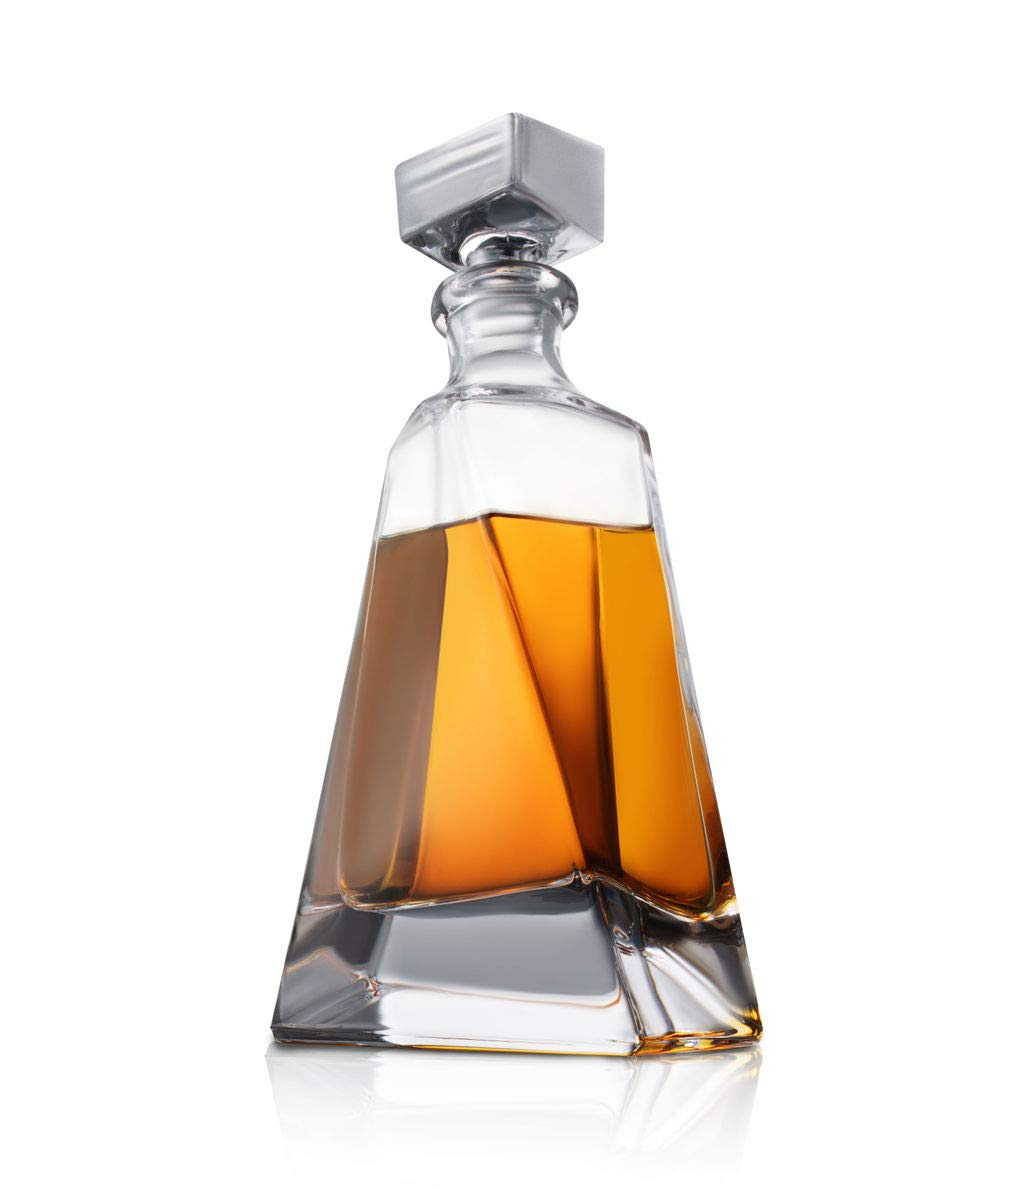 Atlas Whiskey Decanter Brandy Booze Decanter for Whiskey 22 oz Crystal Modern Decanter Non-Lead Small Liquor Decanter with Stopper and Rum Bourbon Scotch Bar Container Liquor